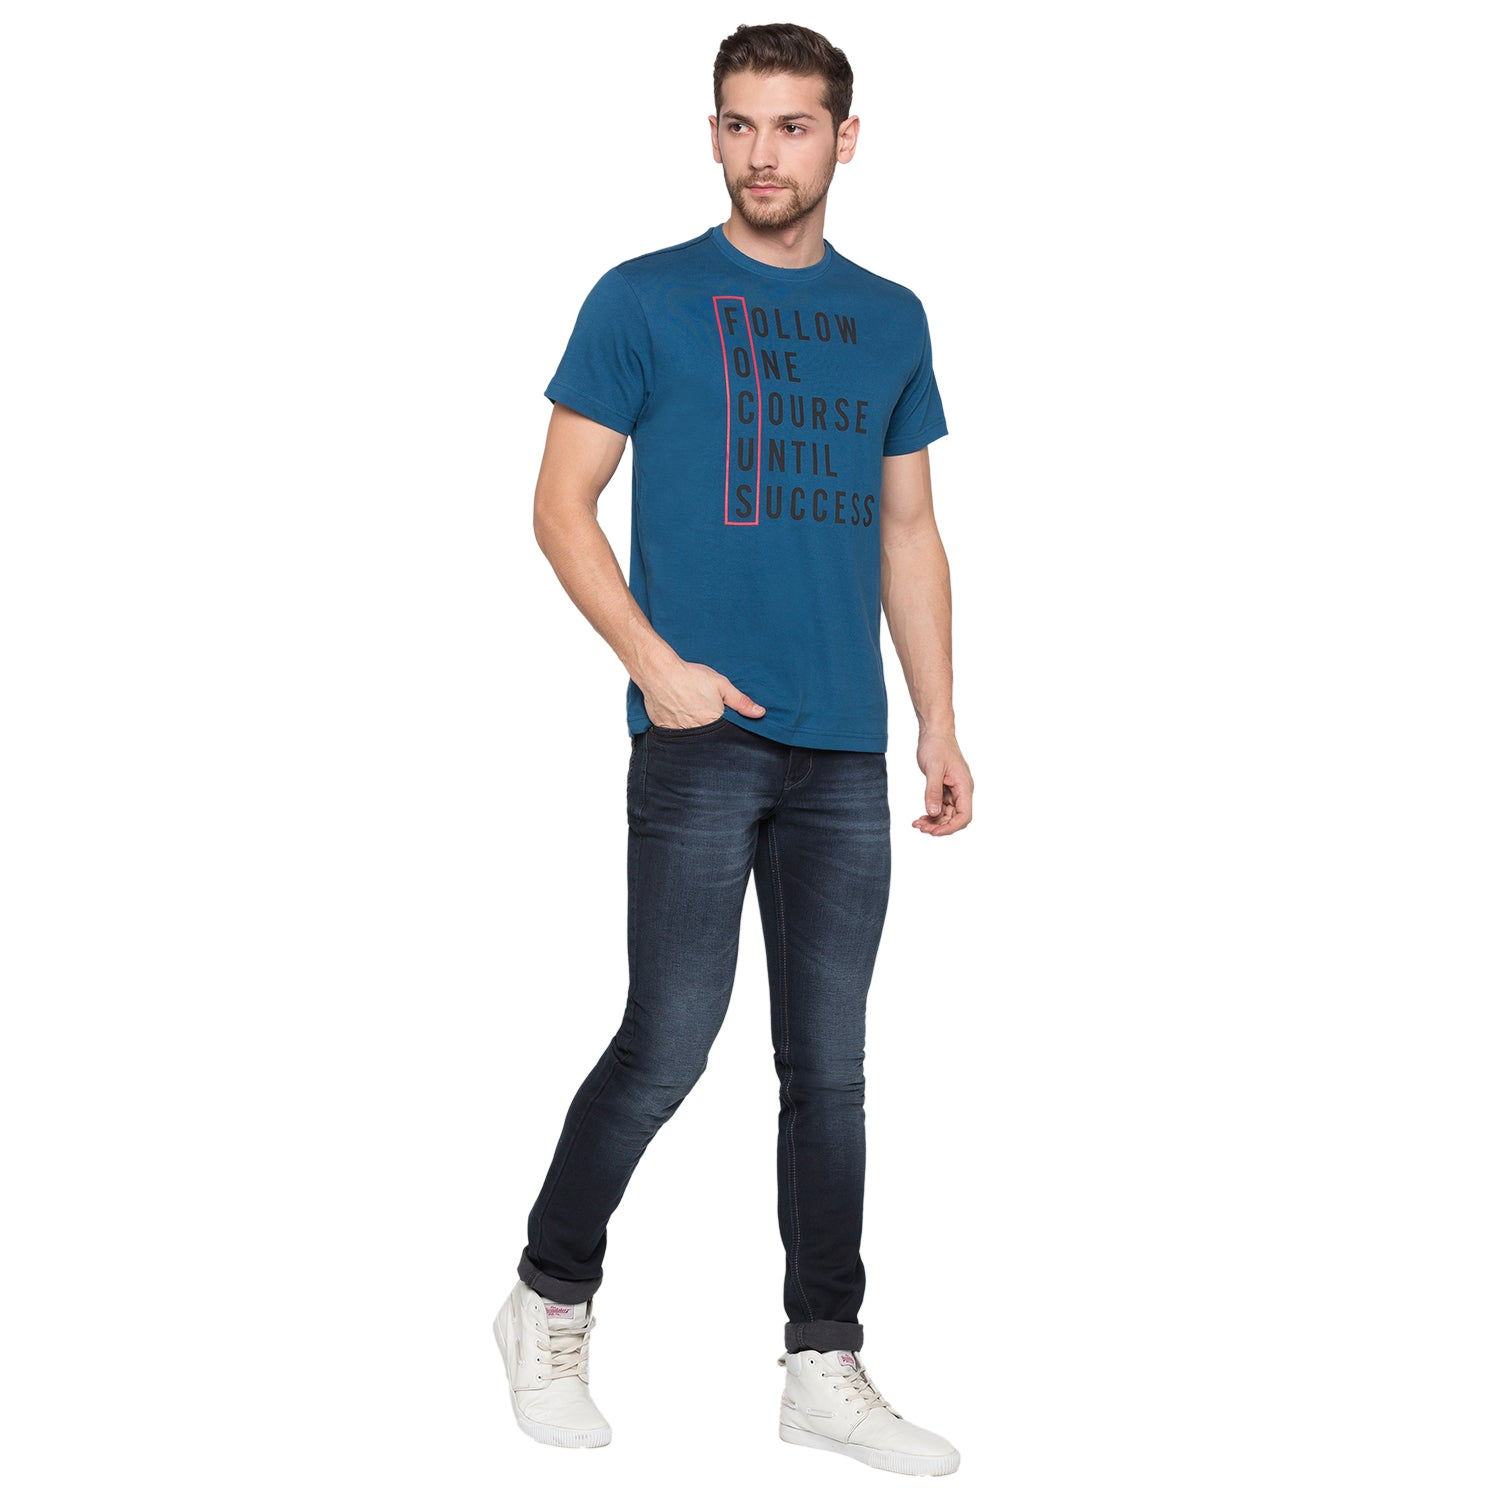 Globus Blue Typography T-Shirt4